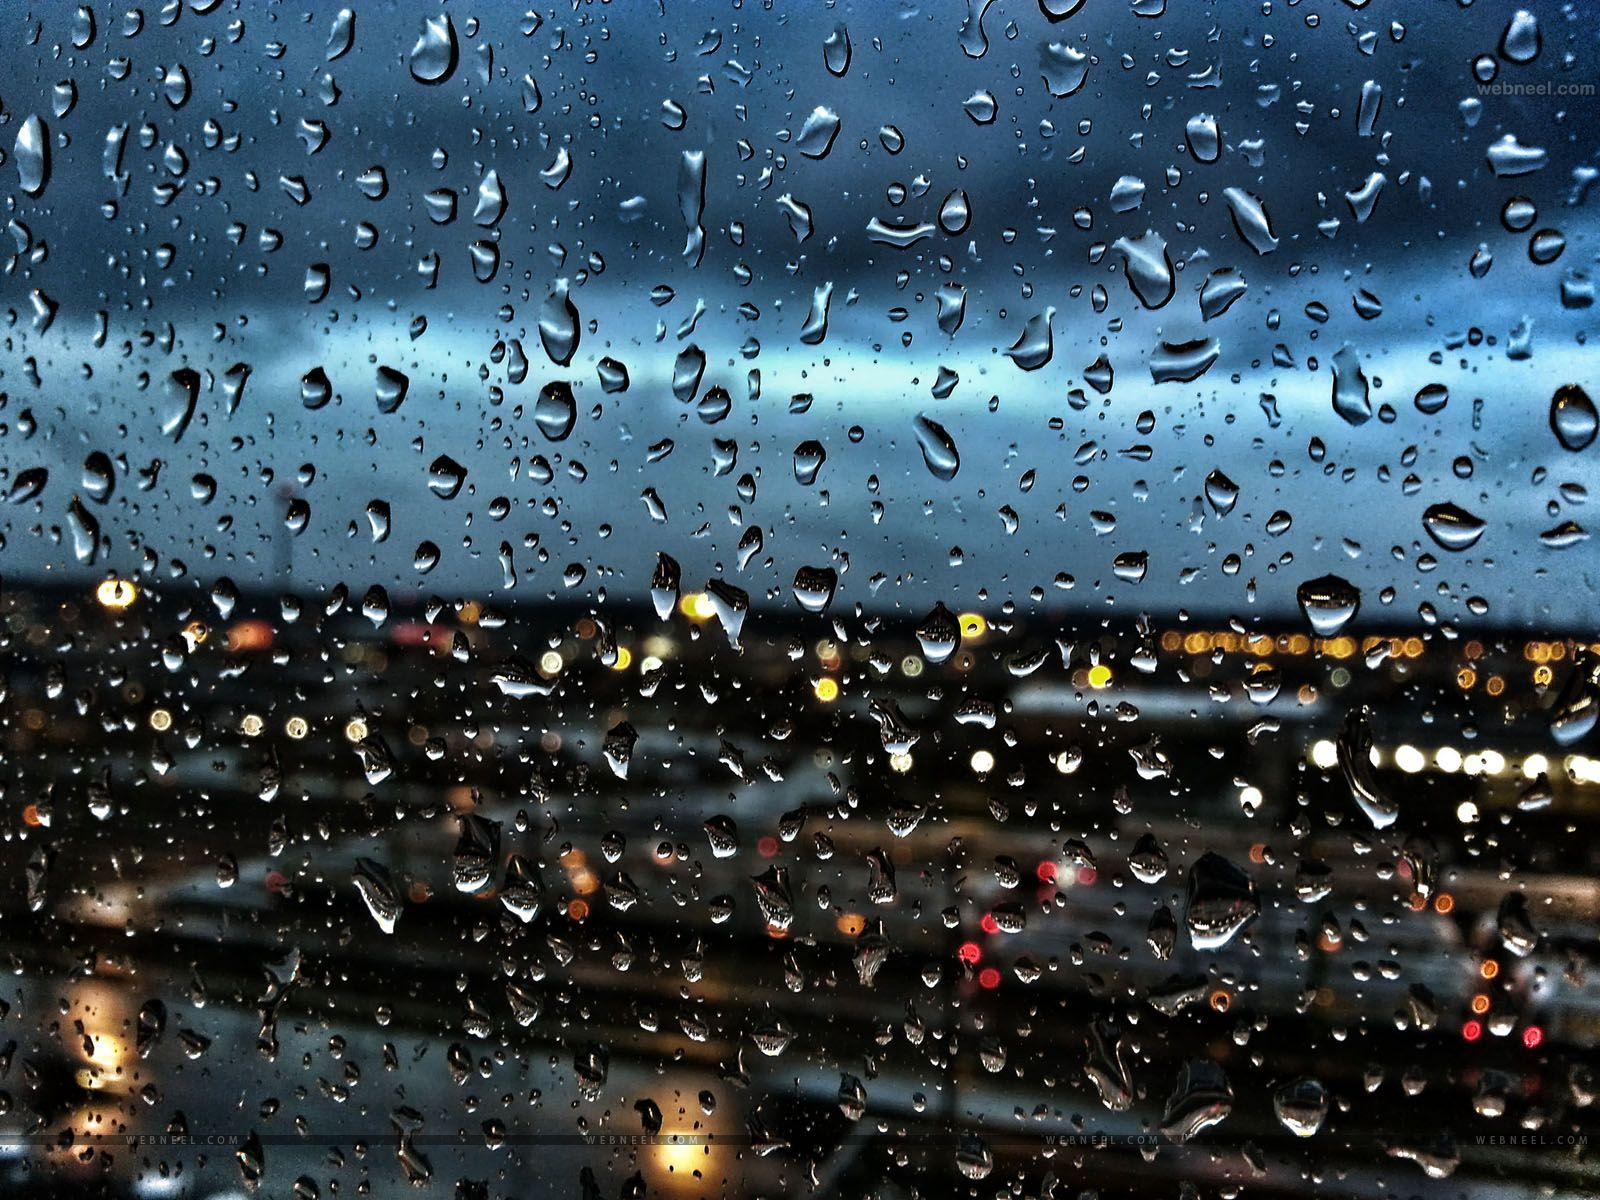 sad rainy weather images - HD 1600×1200